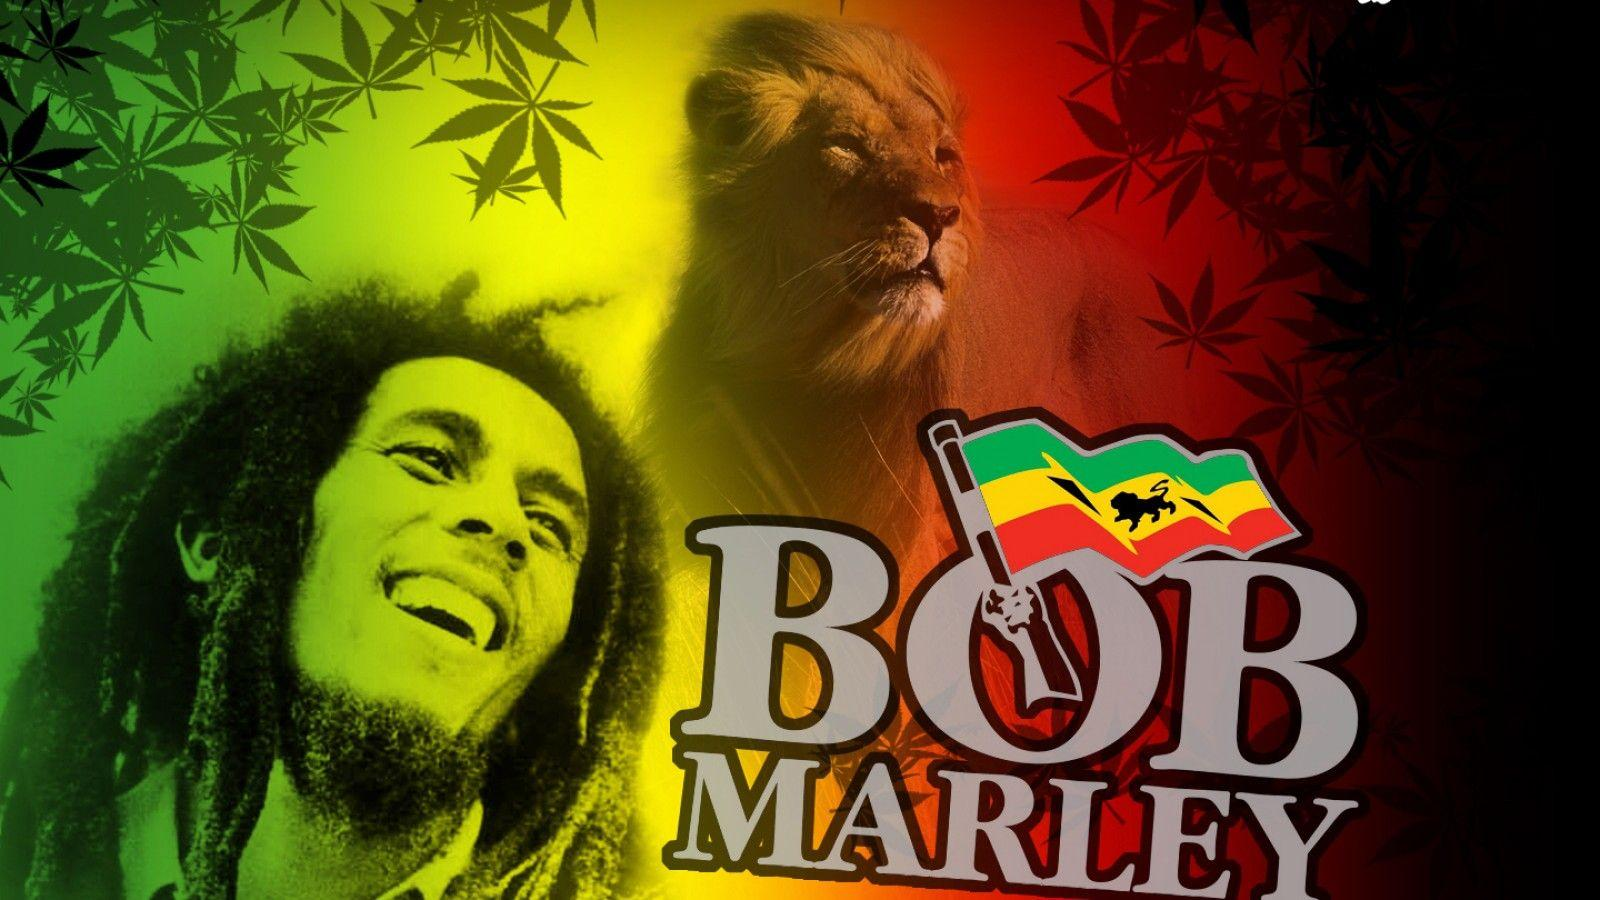 Bob Marley One Love Wallpapers Hd Wallpaper Cave